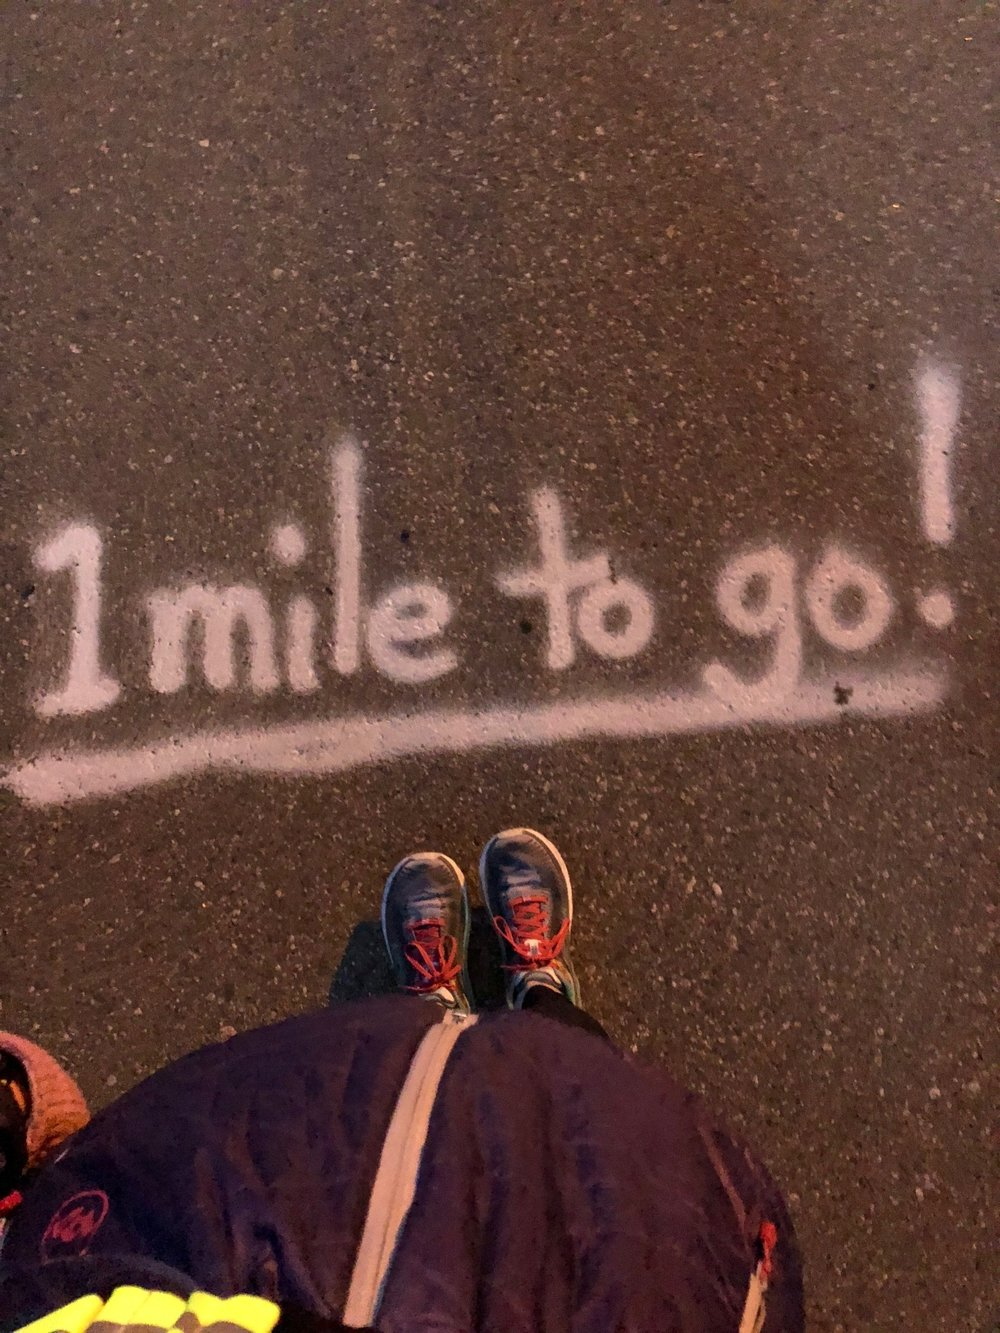 …more like 8 more miles to go! I think this was from the Marathon course back in June!